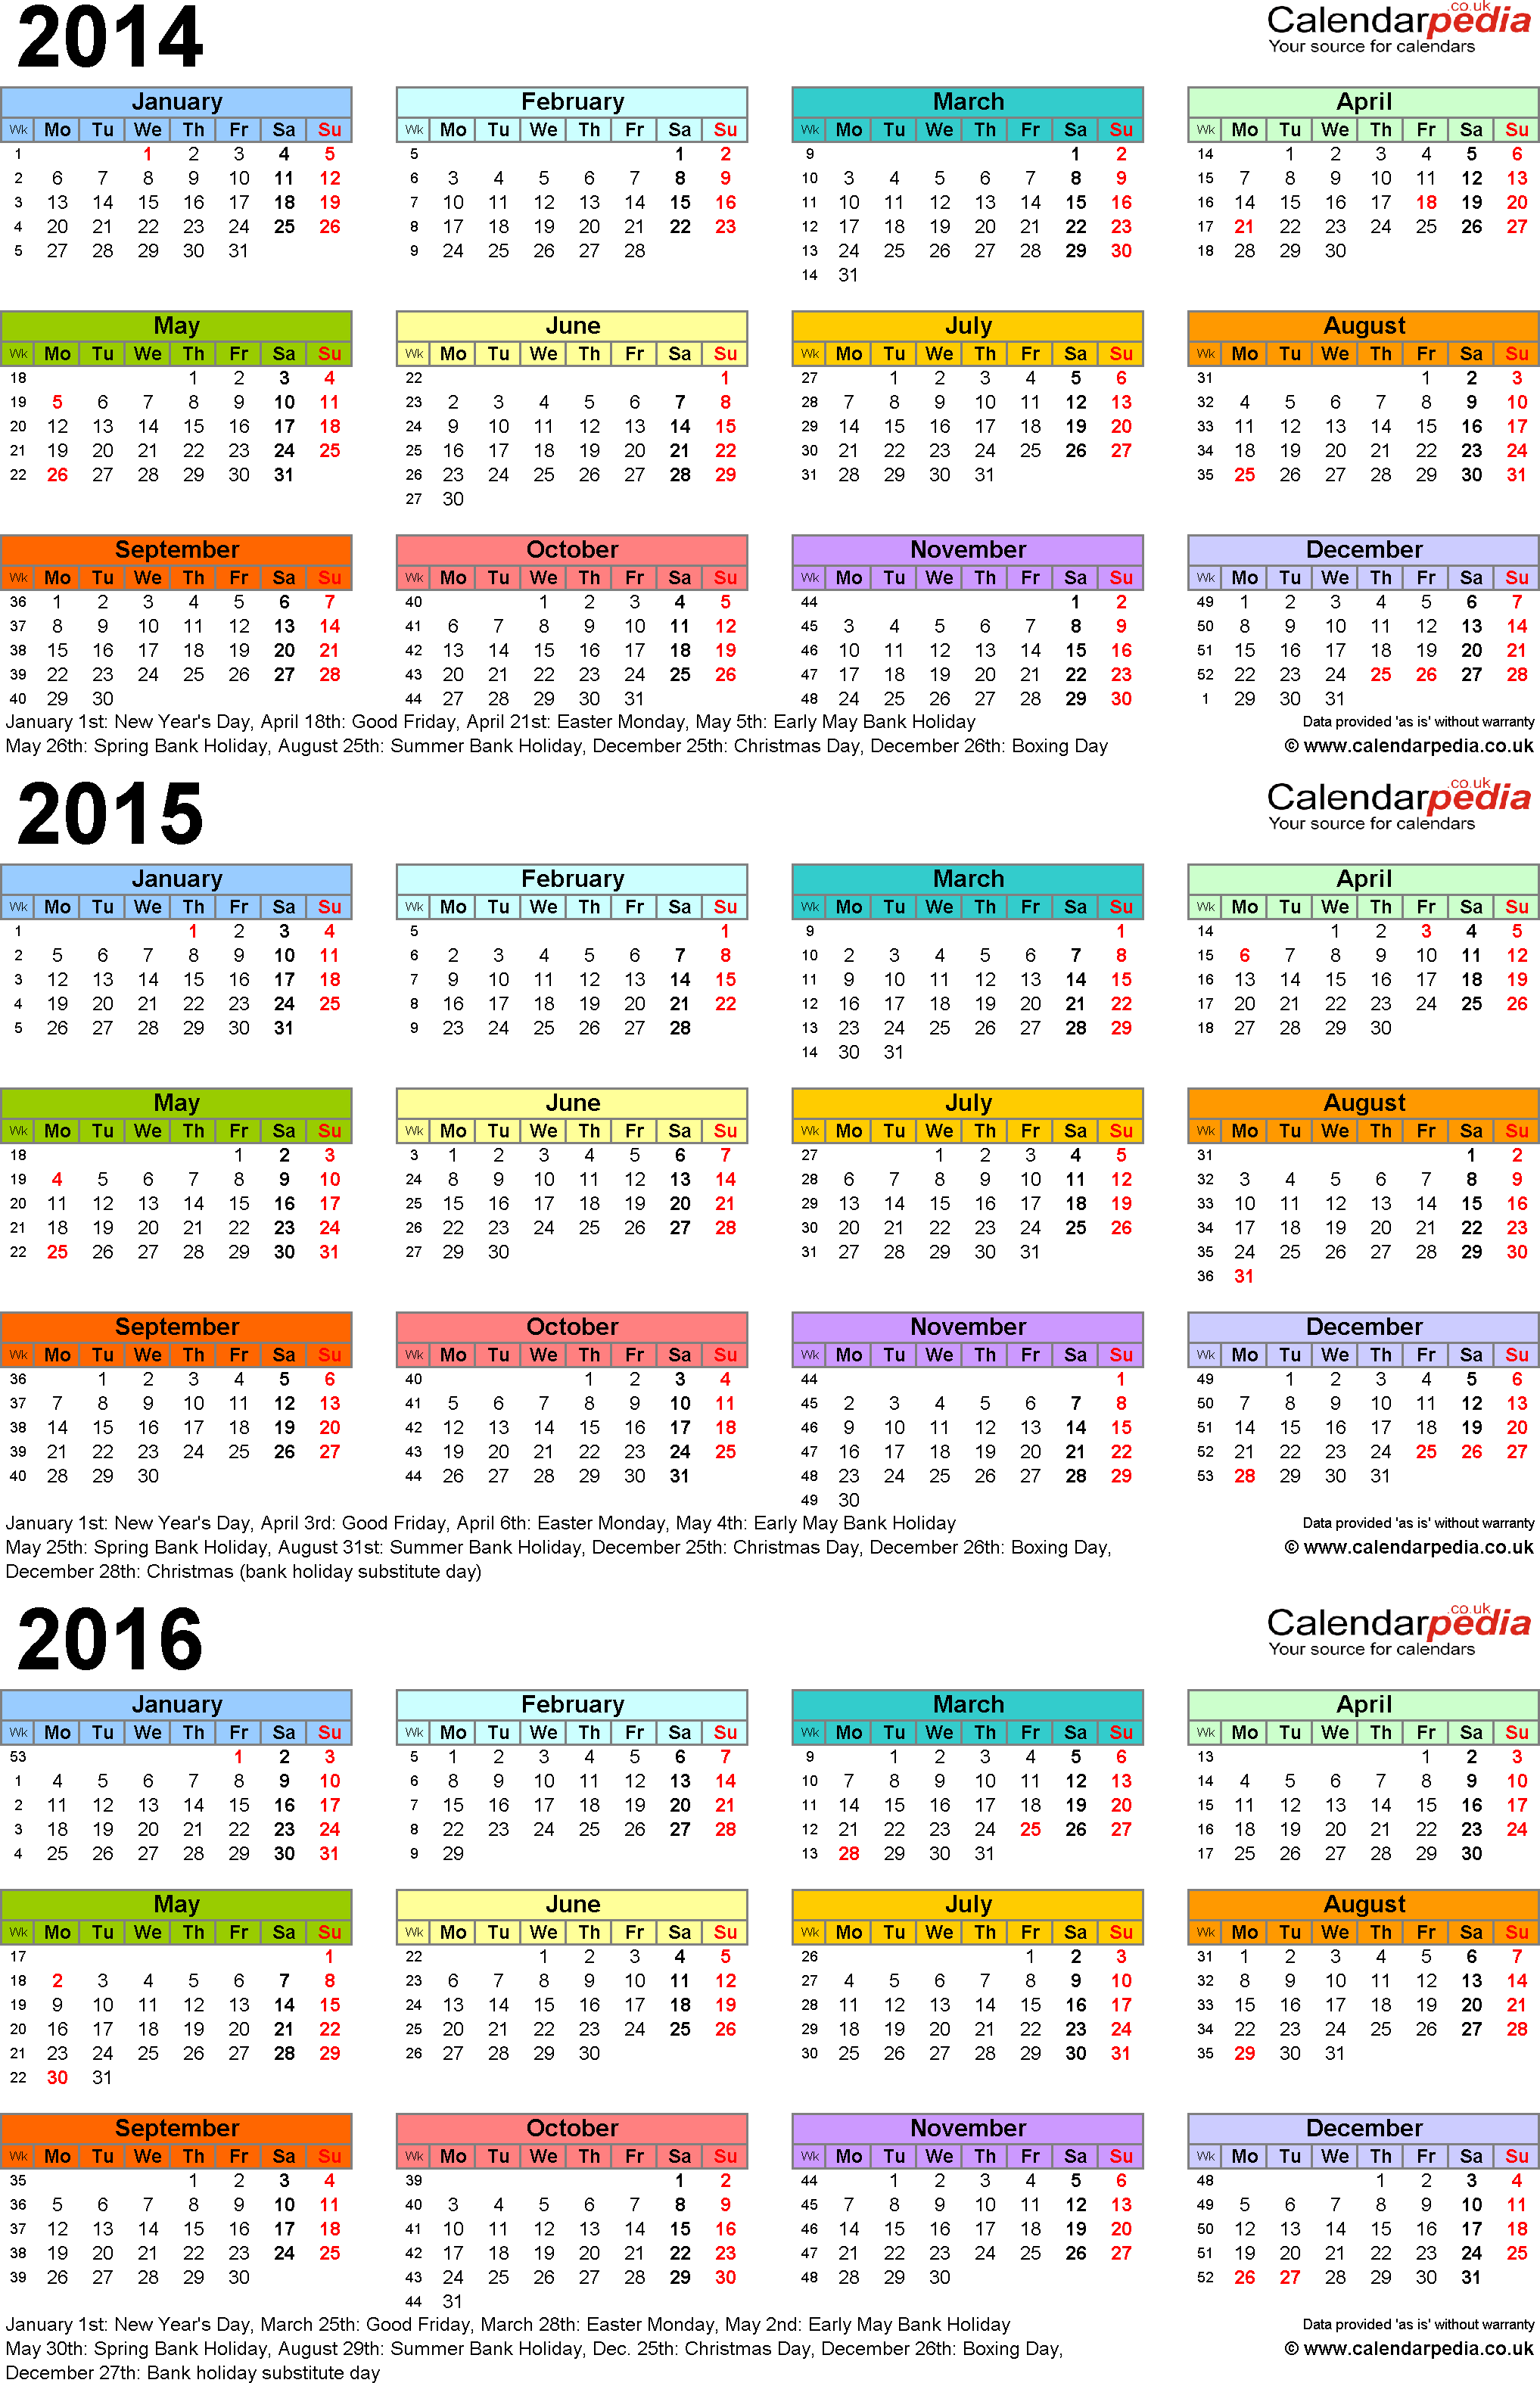 Download Template 3: PDF template for three year calendar 2014-2016 in colour (portrait orientation, 1 page, A4)